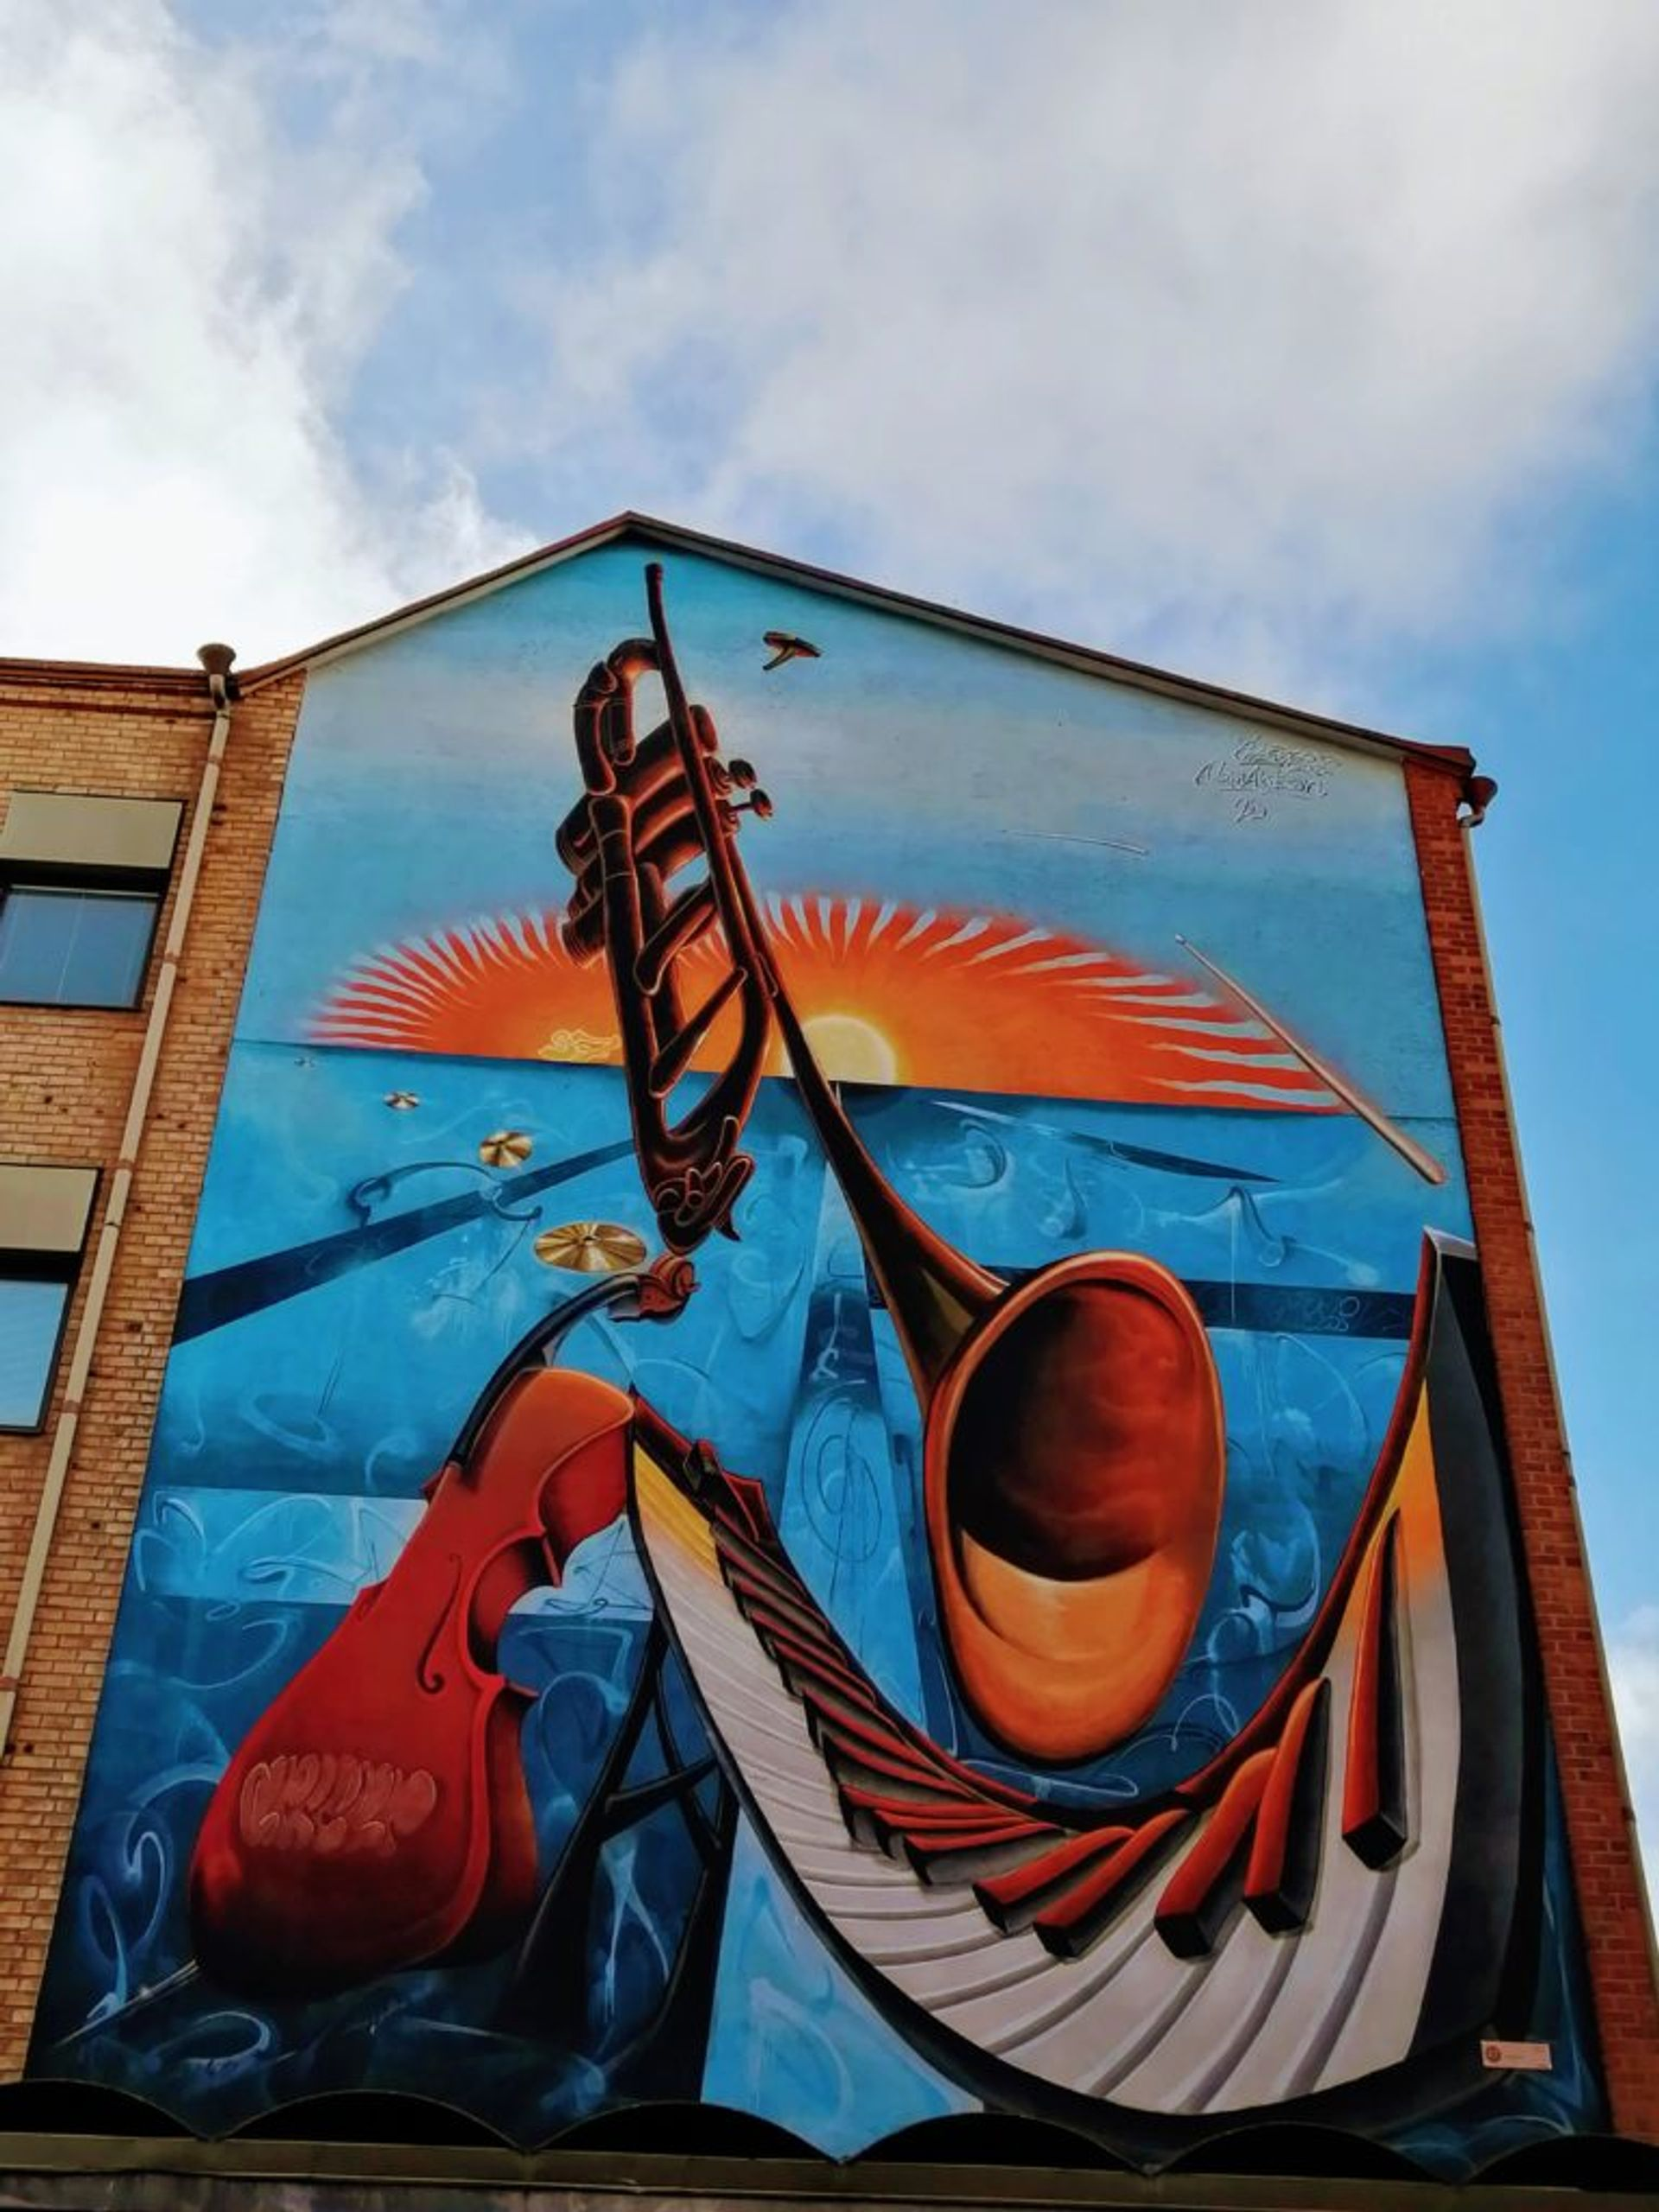 Bright blue and orange mural of musical instruments at sunset on the side of a red-brick building.